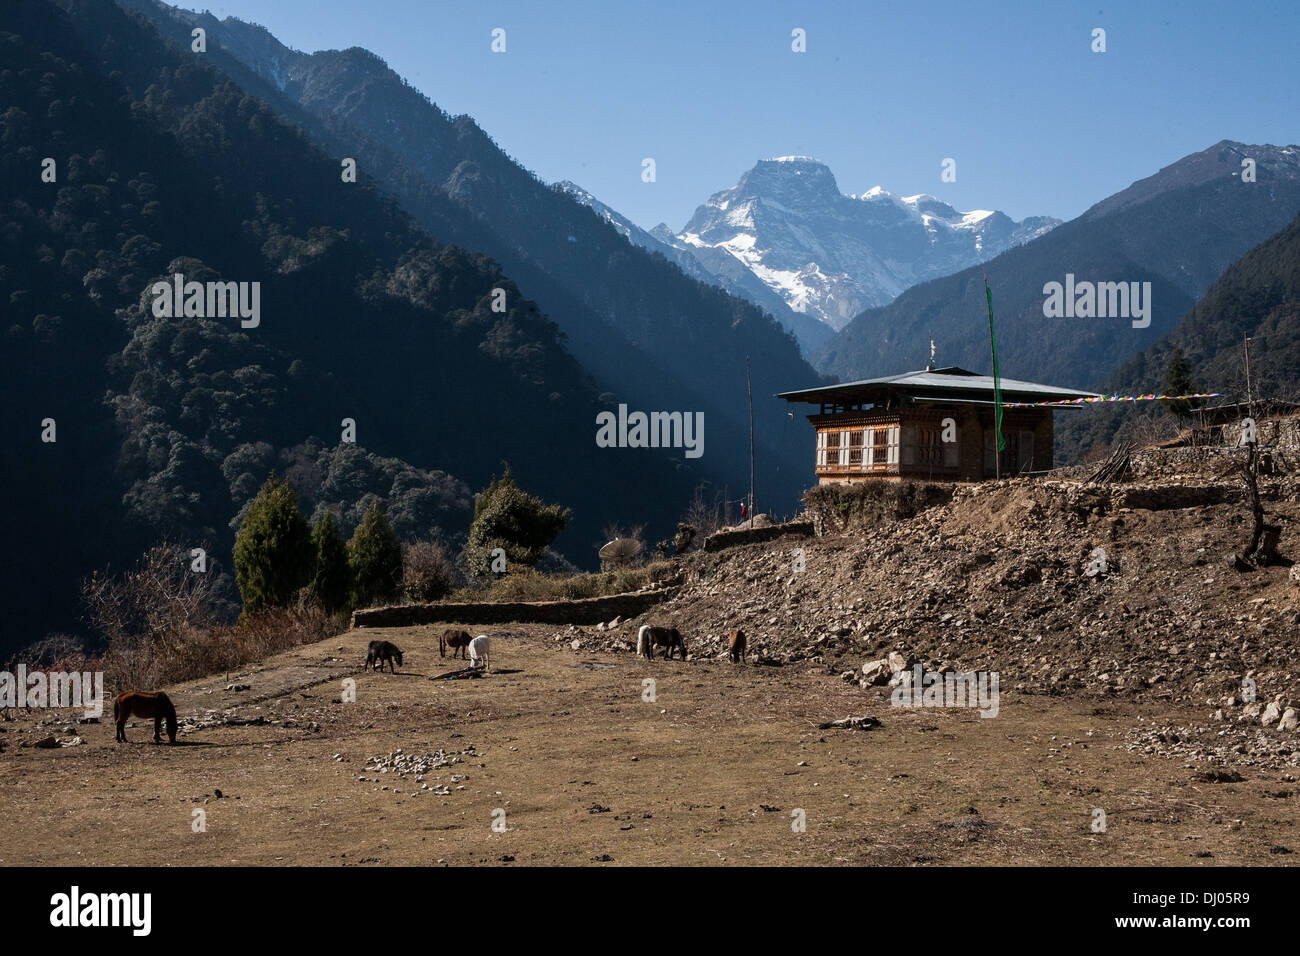 A traditional house perched amongst the Bhutanese Himalayas - Stock Image